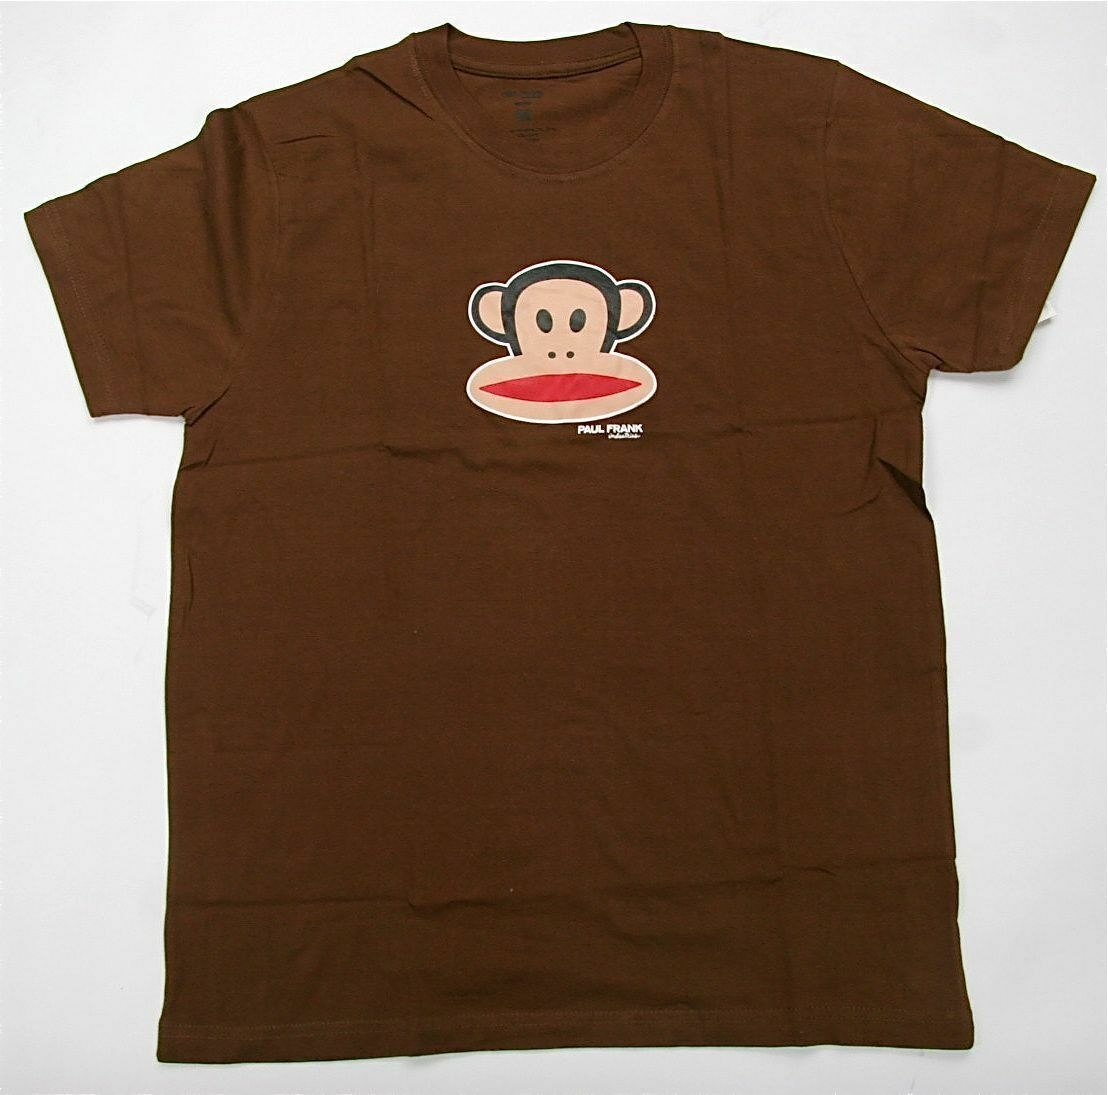 A brown T-shirt with a cartoon monkey head on it